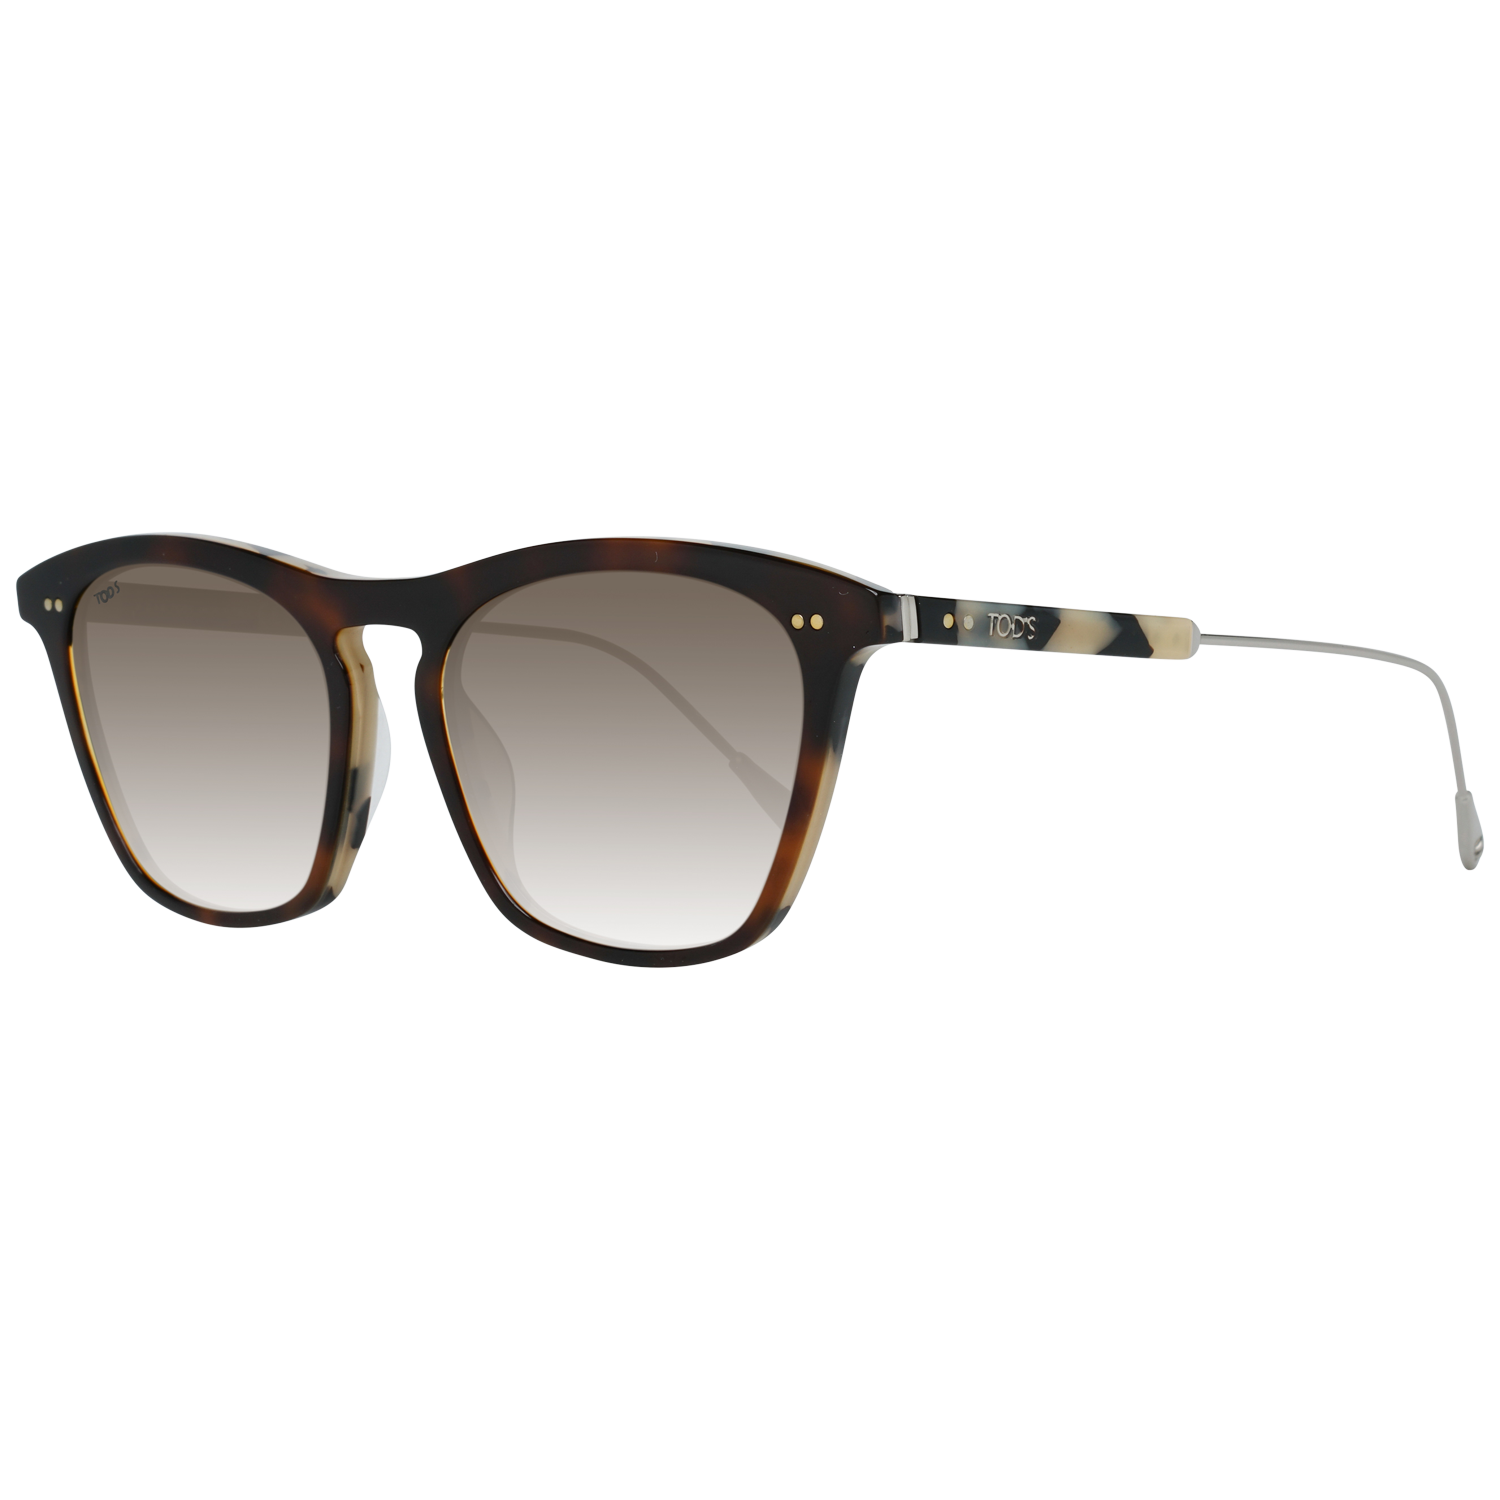 Tods Sunglasses TO0215 55K 53 Brown